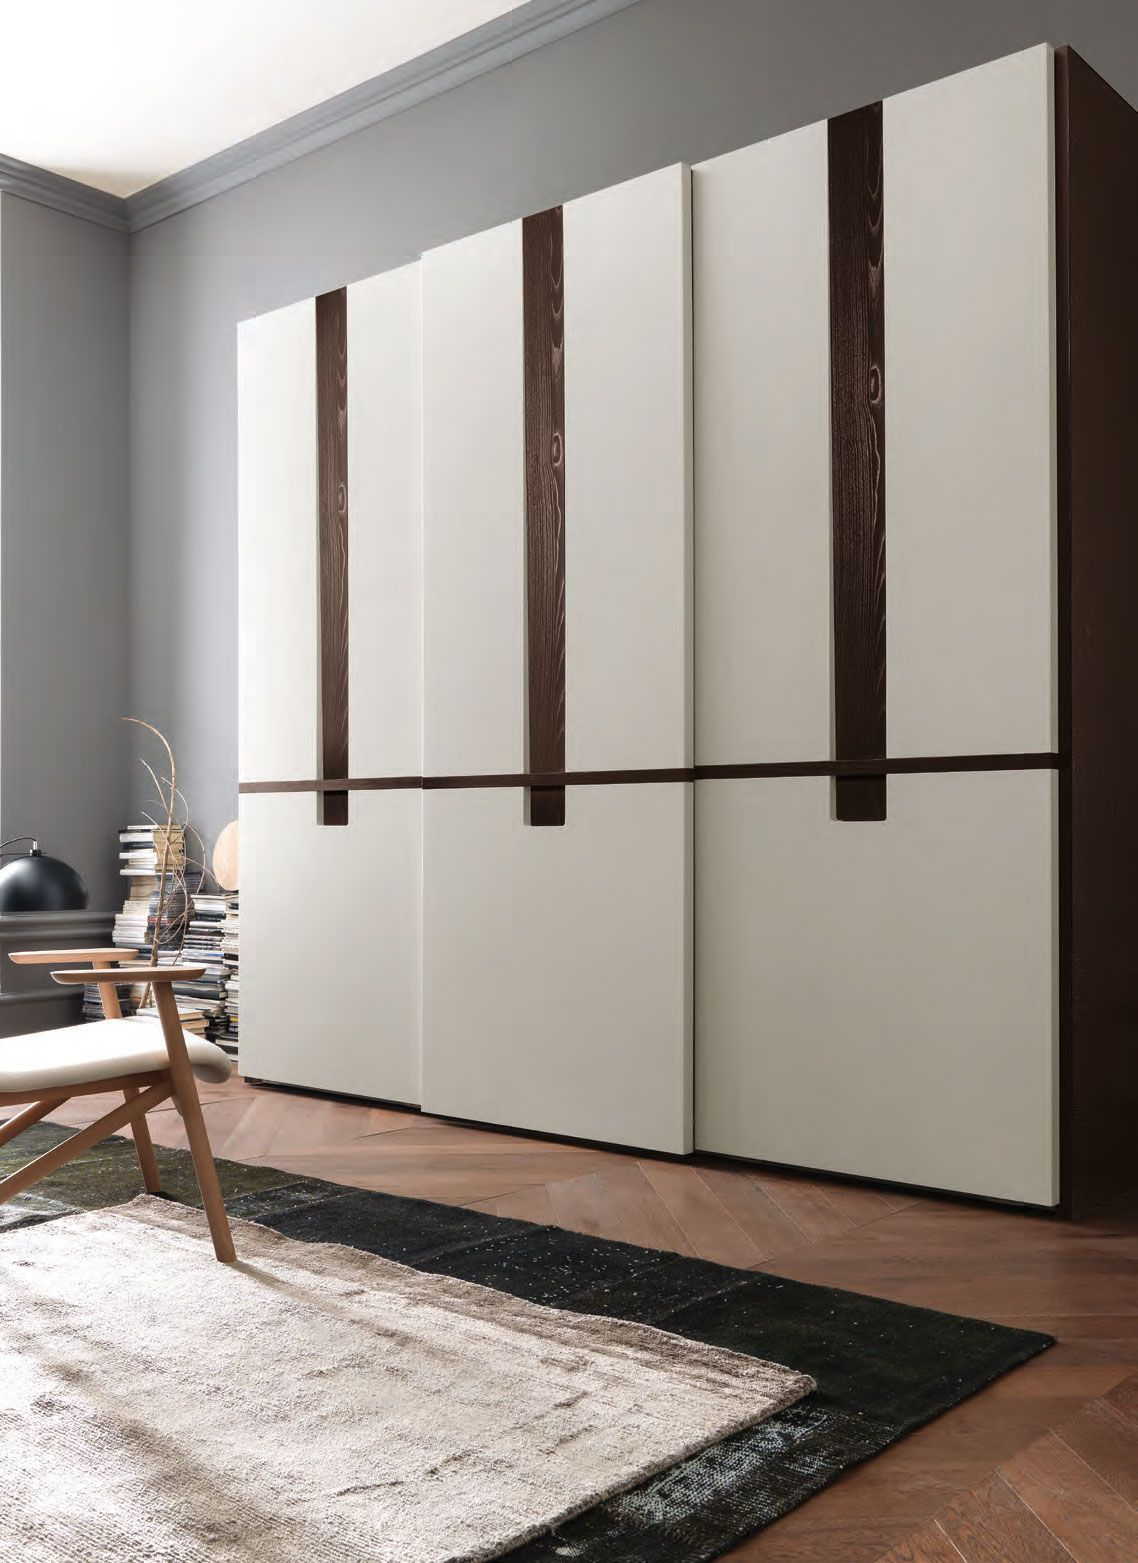 wardrobe ideas wardrobe furniture bedroom wardrobe wardrobe closet